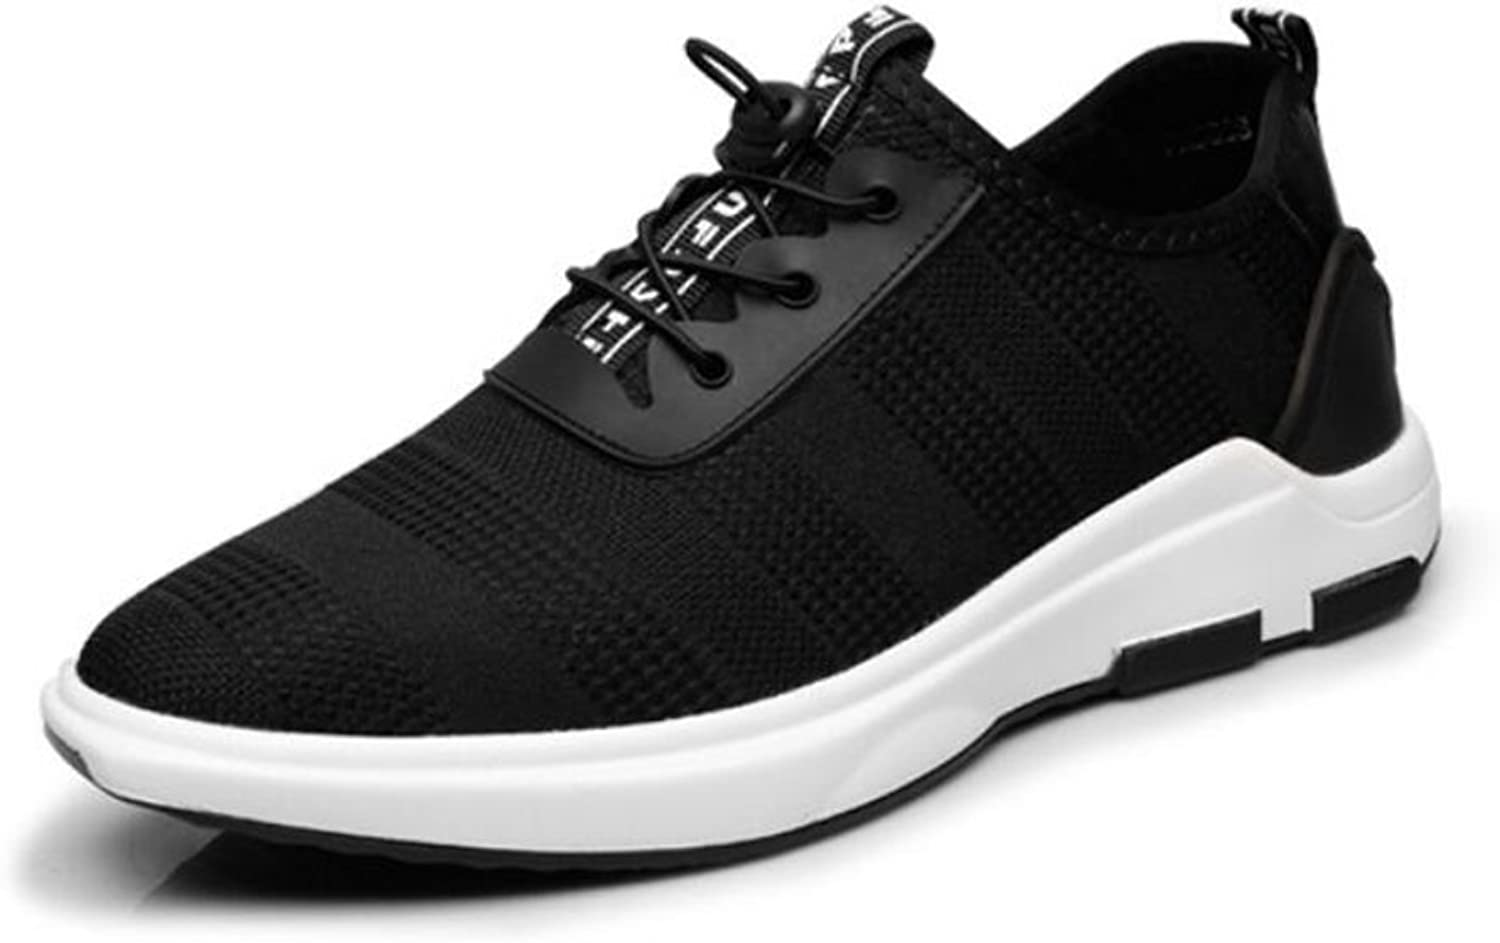 Men's shoes Knit Sneakers Fall Winter Comfort Athletic shoes Tennis shoes Mens Low-top Lace-up Running shoes Riding shoes (color   Black, Size   42)